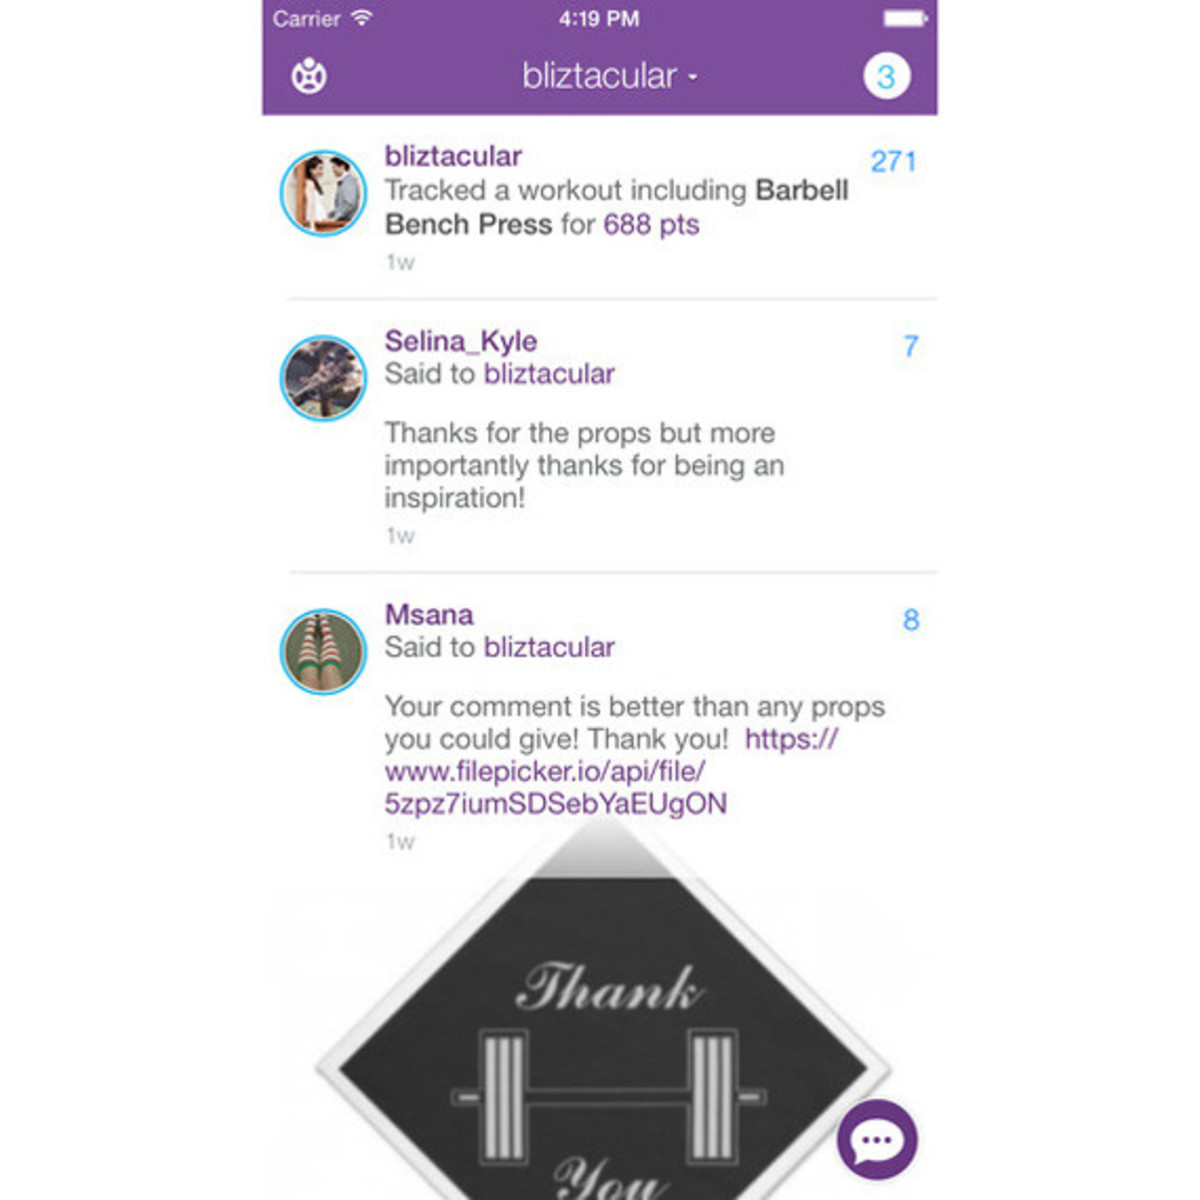 11-of-the-best-training-apps-for-athletes-verizon-02